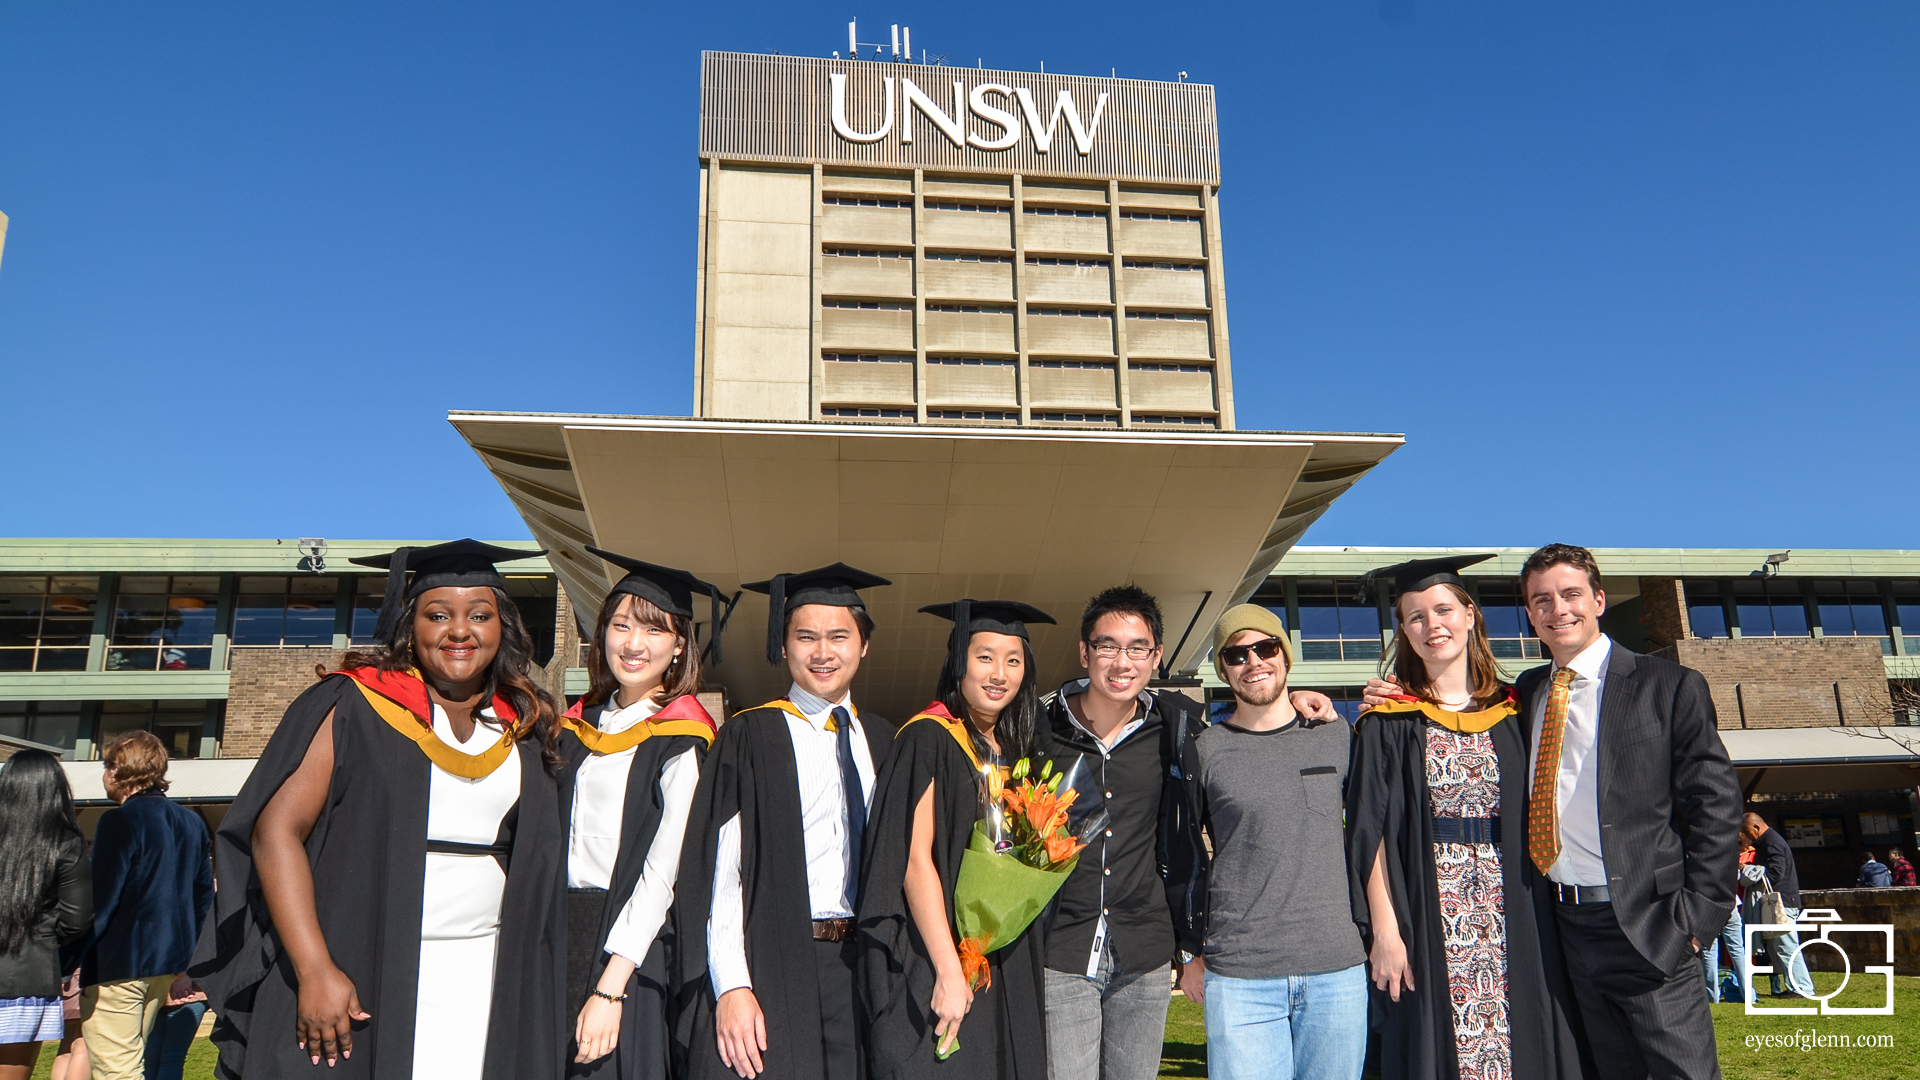 Photovoltaics/Renewable Energy Graduates UNSW